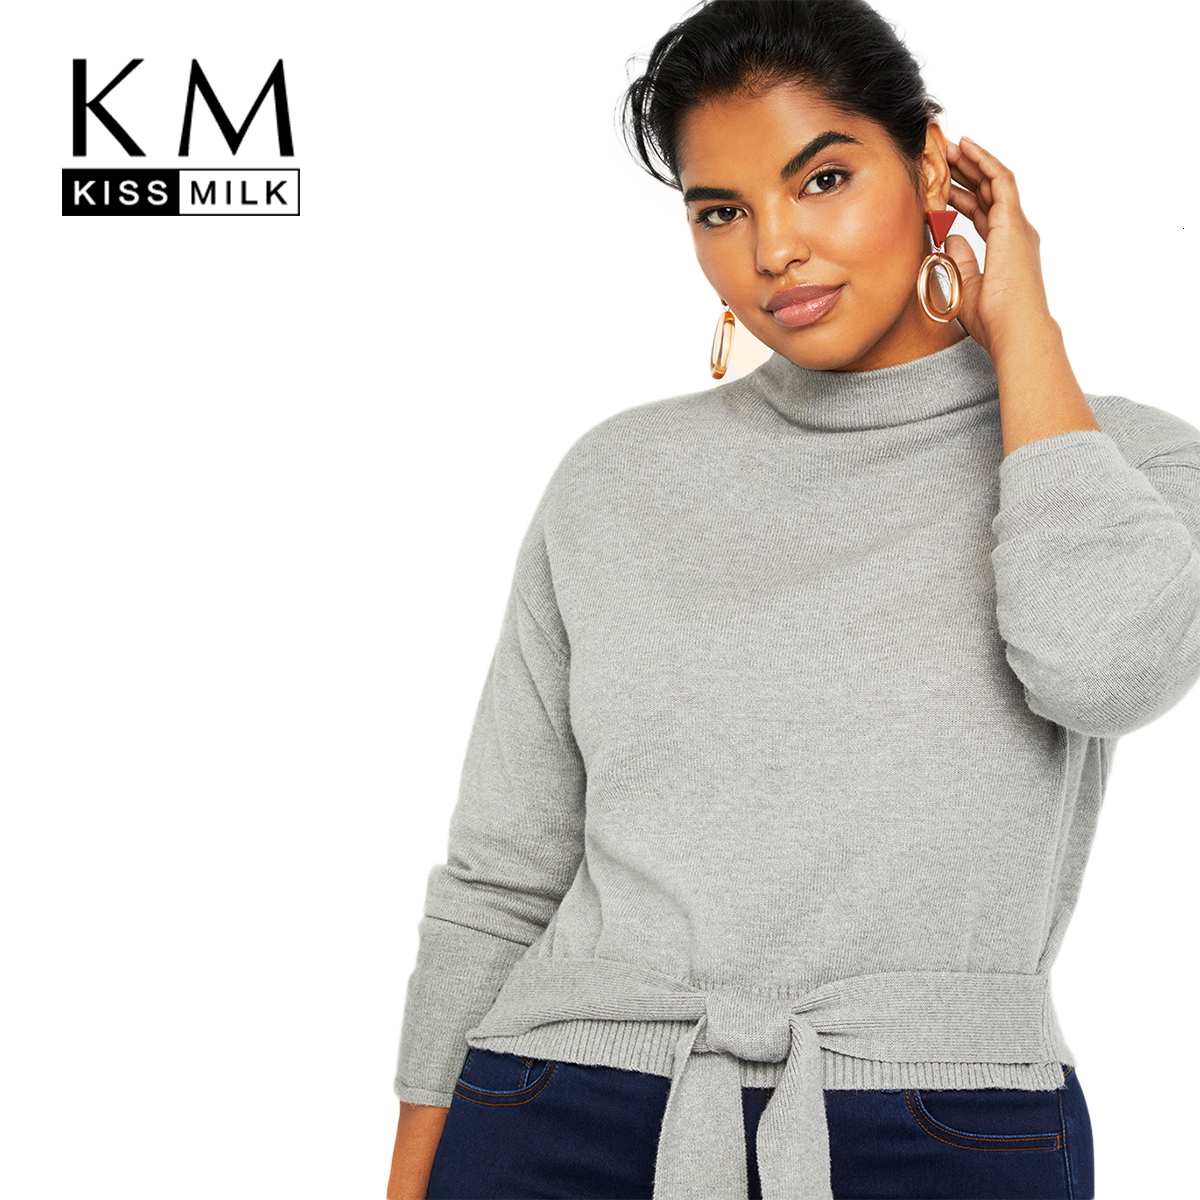 Kissmilk Plus Size Woman Clothes Solid Color Stand Collar Loose Tie Knit Long Sleeve Pullover